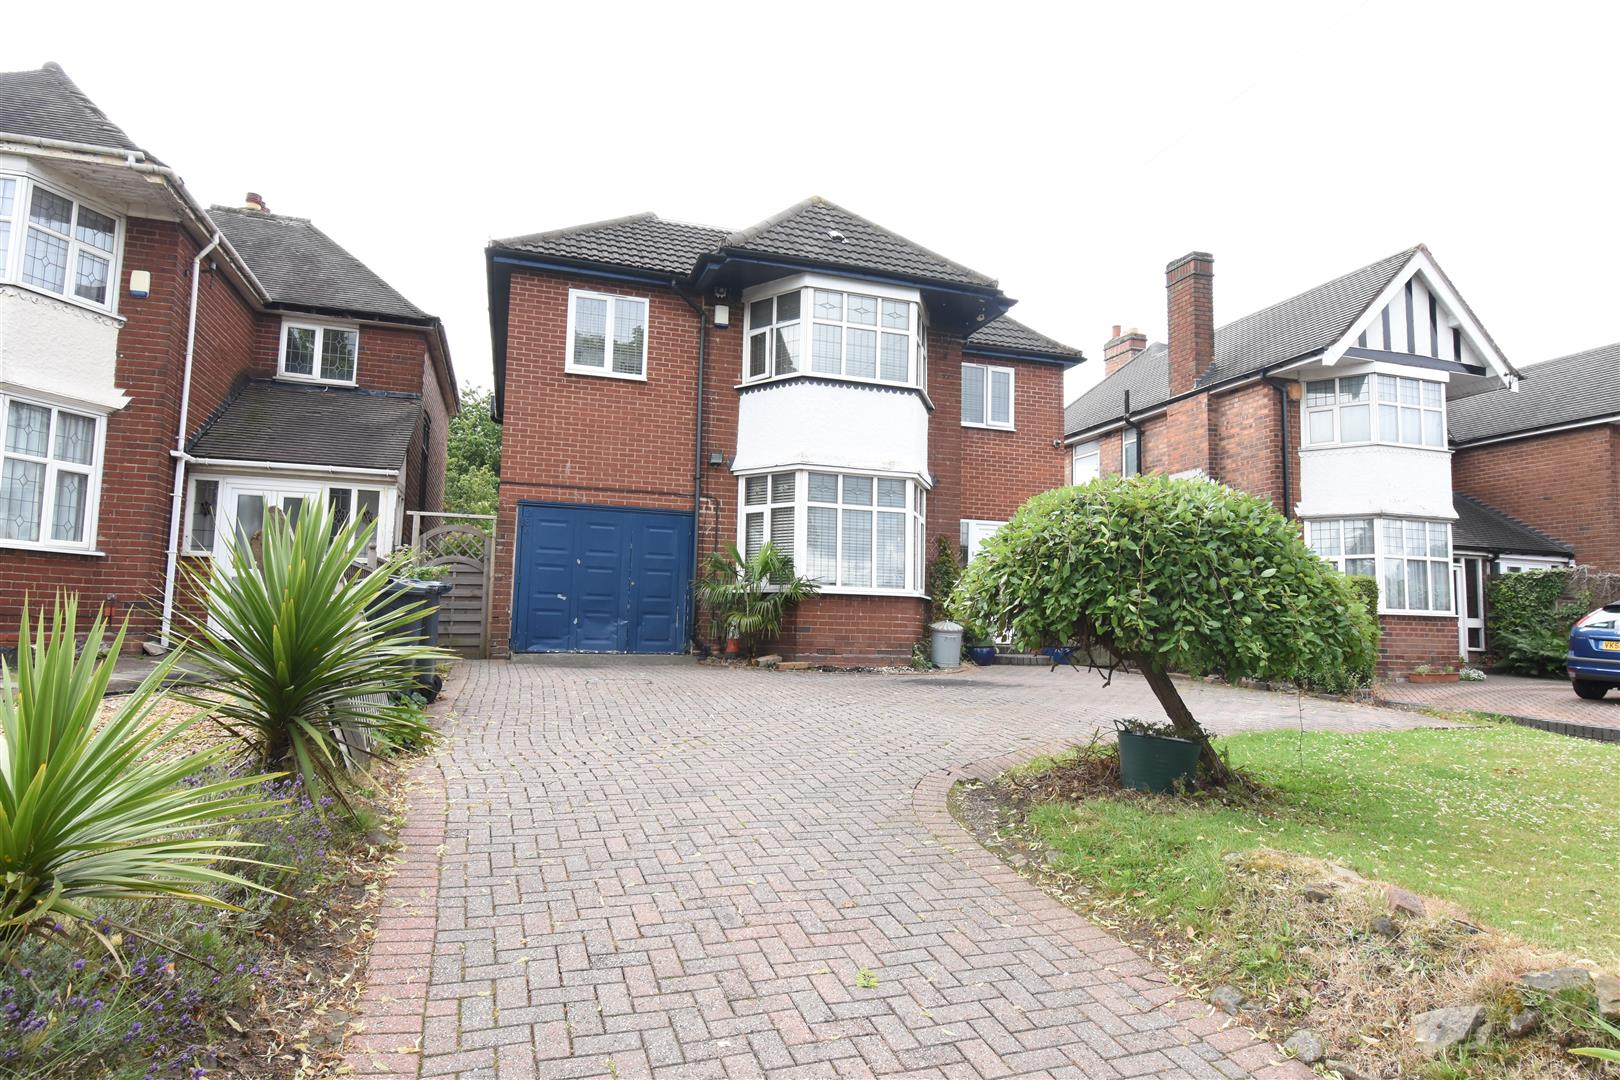 4 bed house for sale in Coleshill Road, Hodge Hill, Birmingham, B36